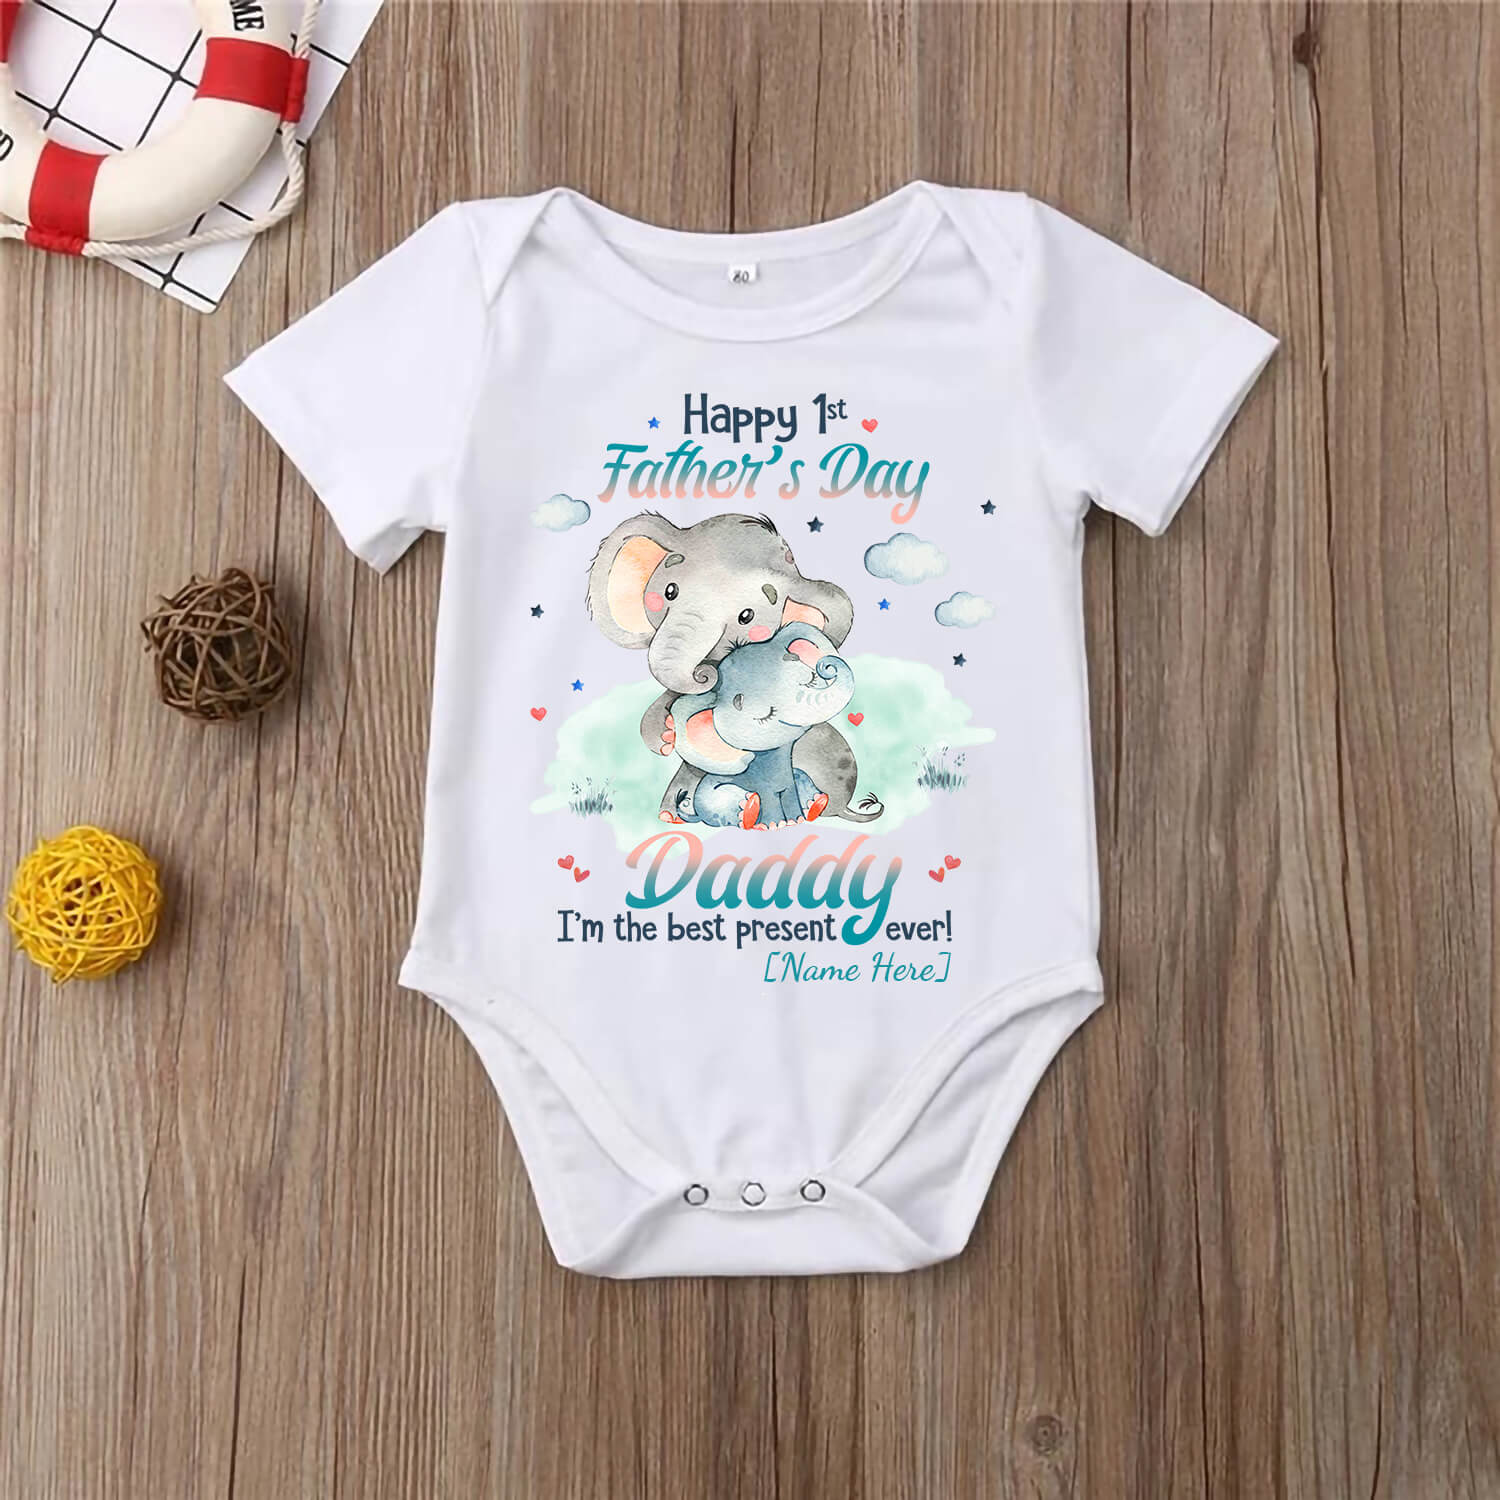 Newborn Outfit Father Day Gift Father Day Outfit Father Day ONESIES\u00ae Baby Girl ONESIE\u00ae Newborn ONESIE\u00ae Baby Girl Top Baby Girl Outfit